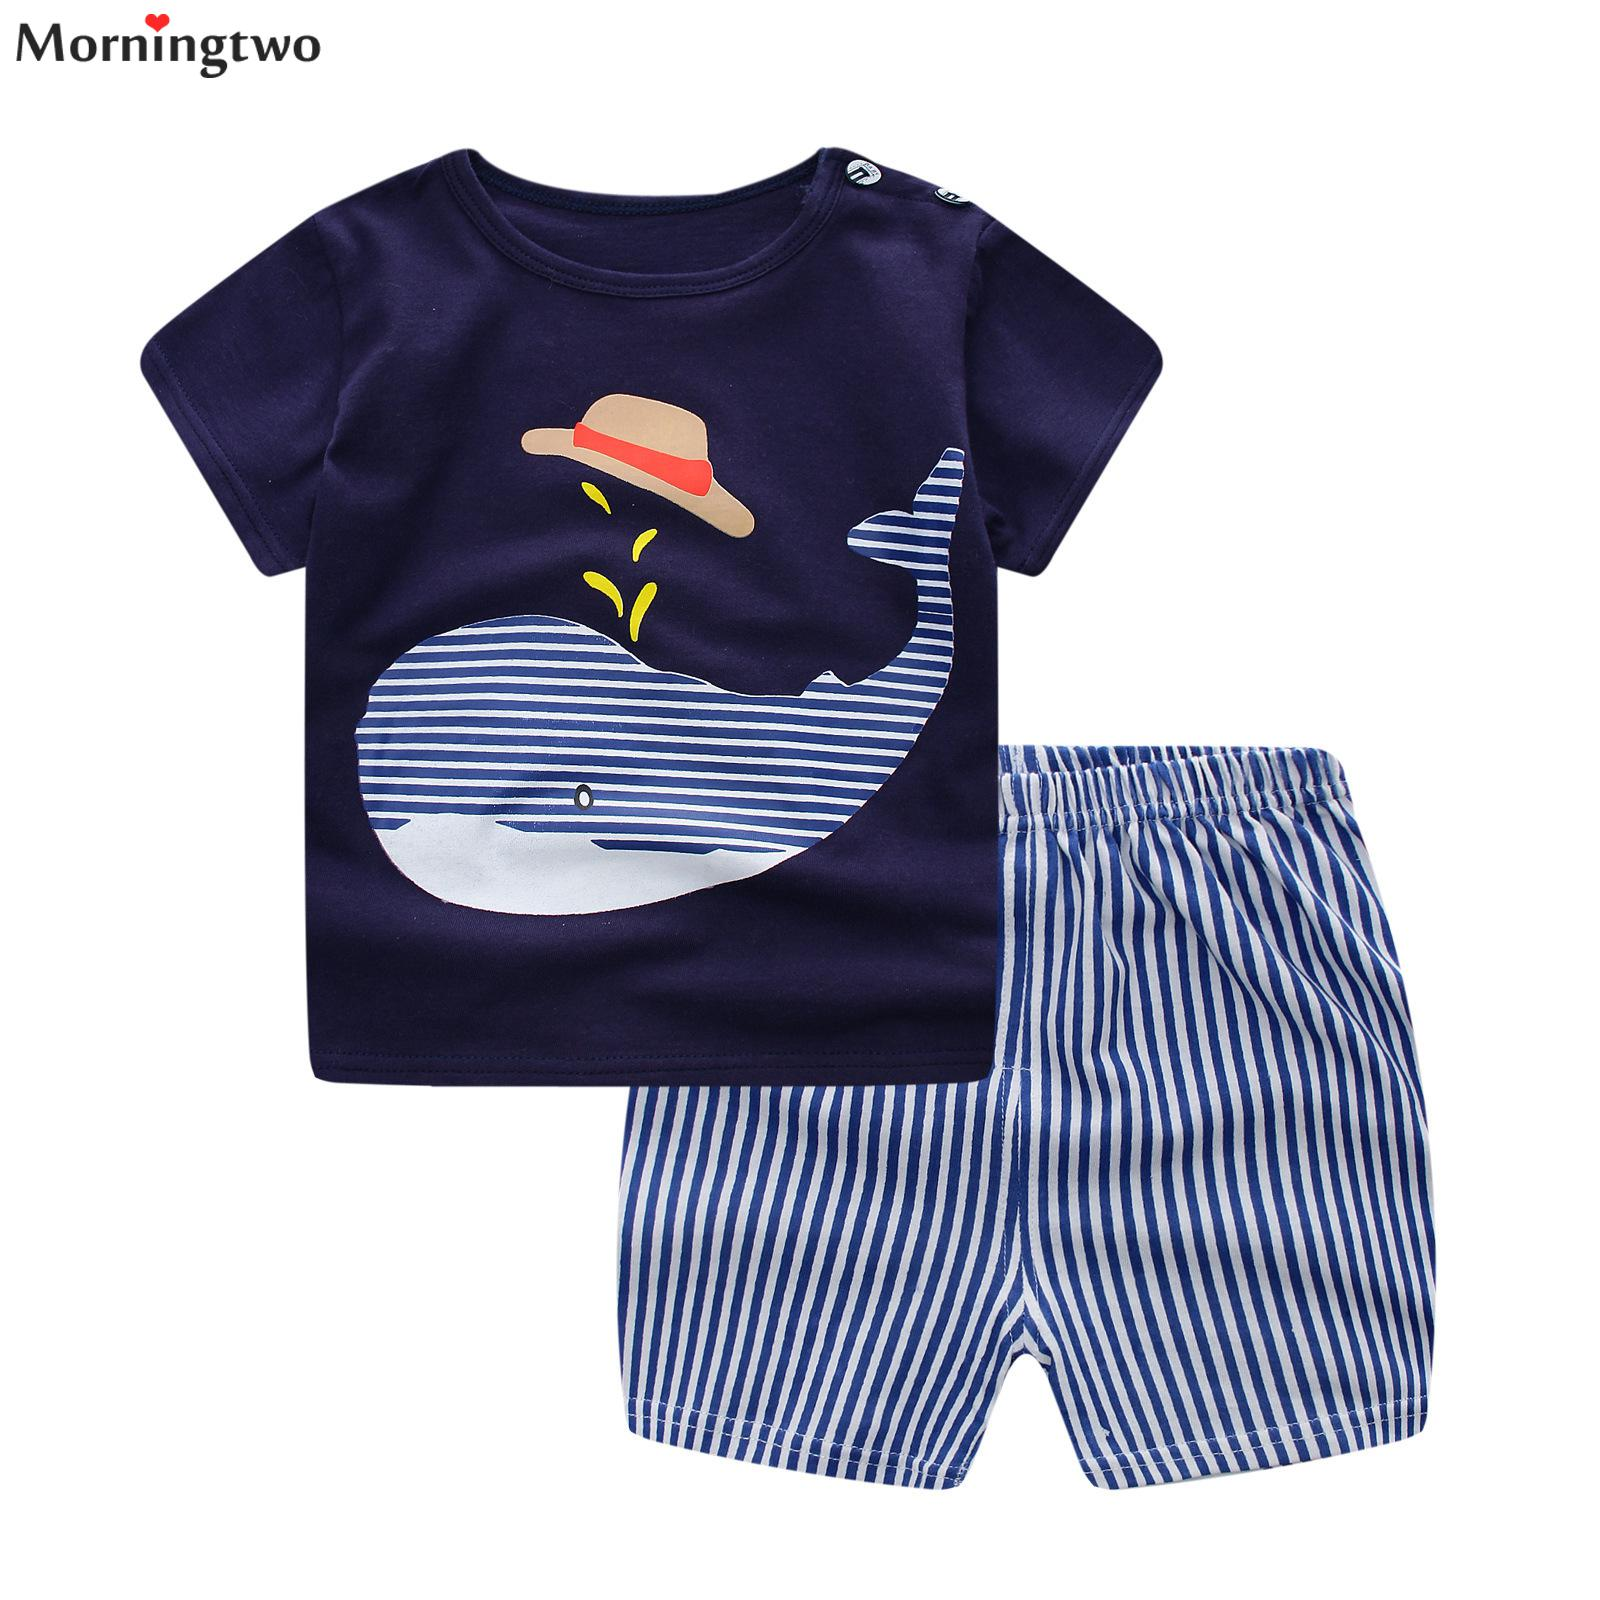 Baby Boy Clothes Set Summer Baby Boys Clothes Set Cotton Baby Clothing Suit (shirt+pants) Cartoon Infant Clothes Set For 18M-5Y цены онлайн